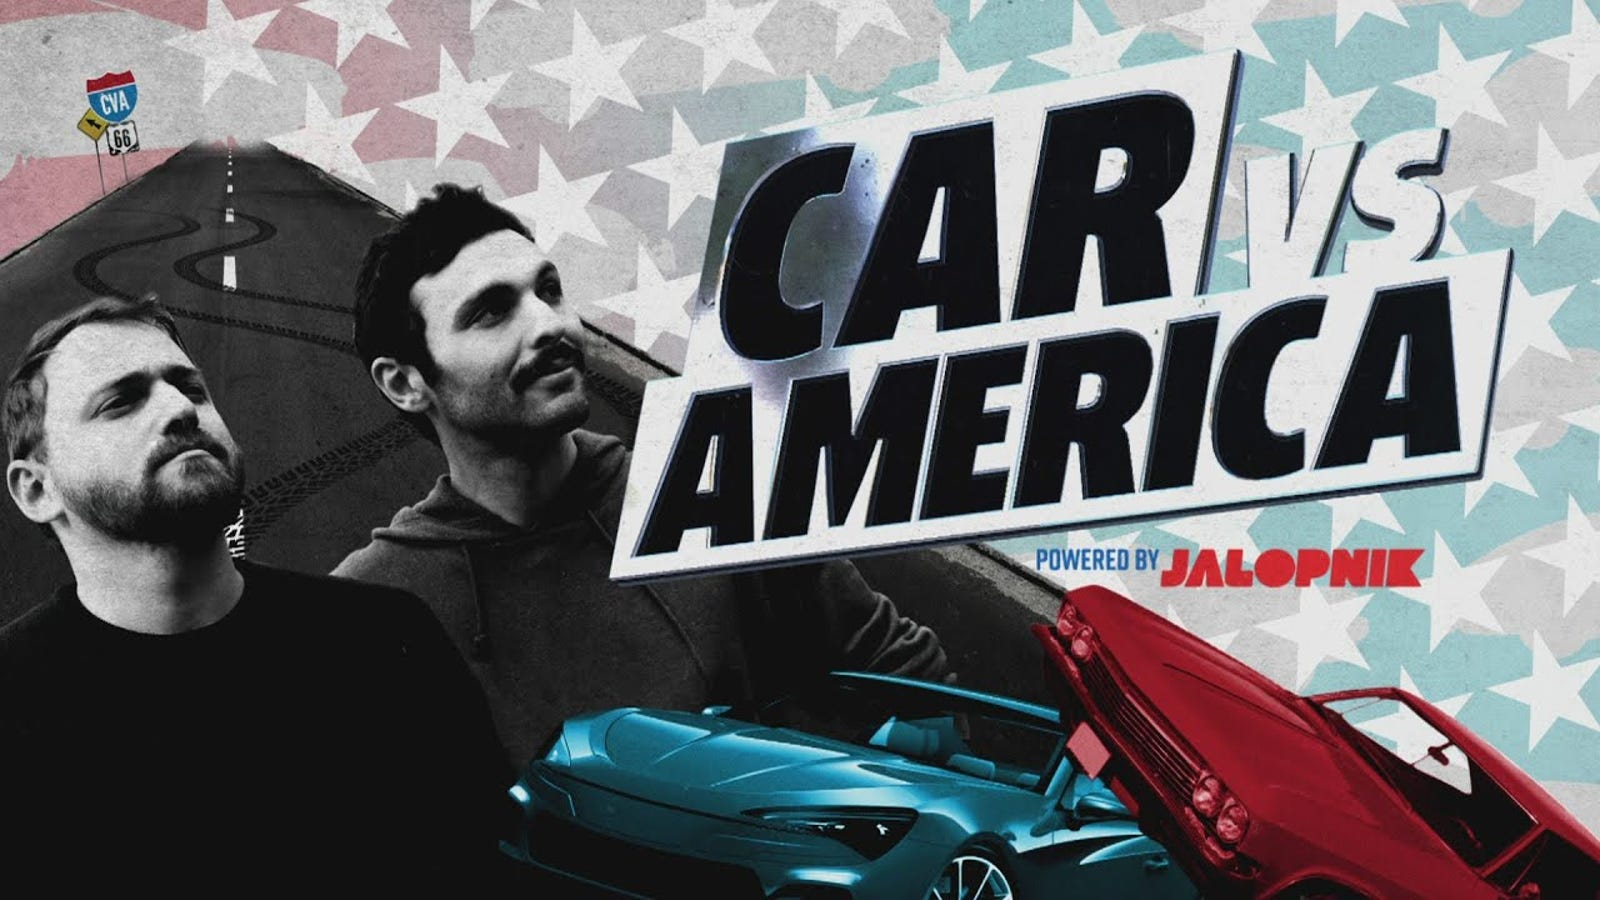 Watch The First Full Episode Of Jalopnik's TV Show Car VS